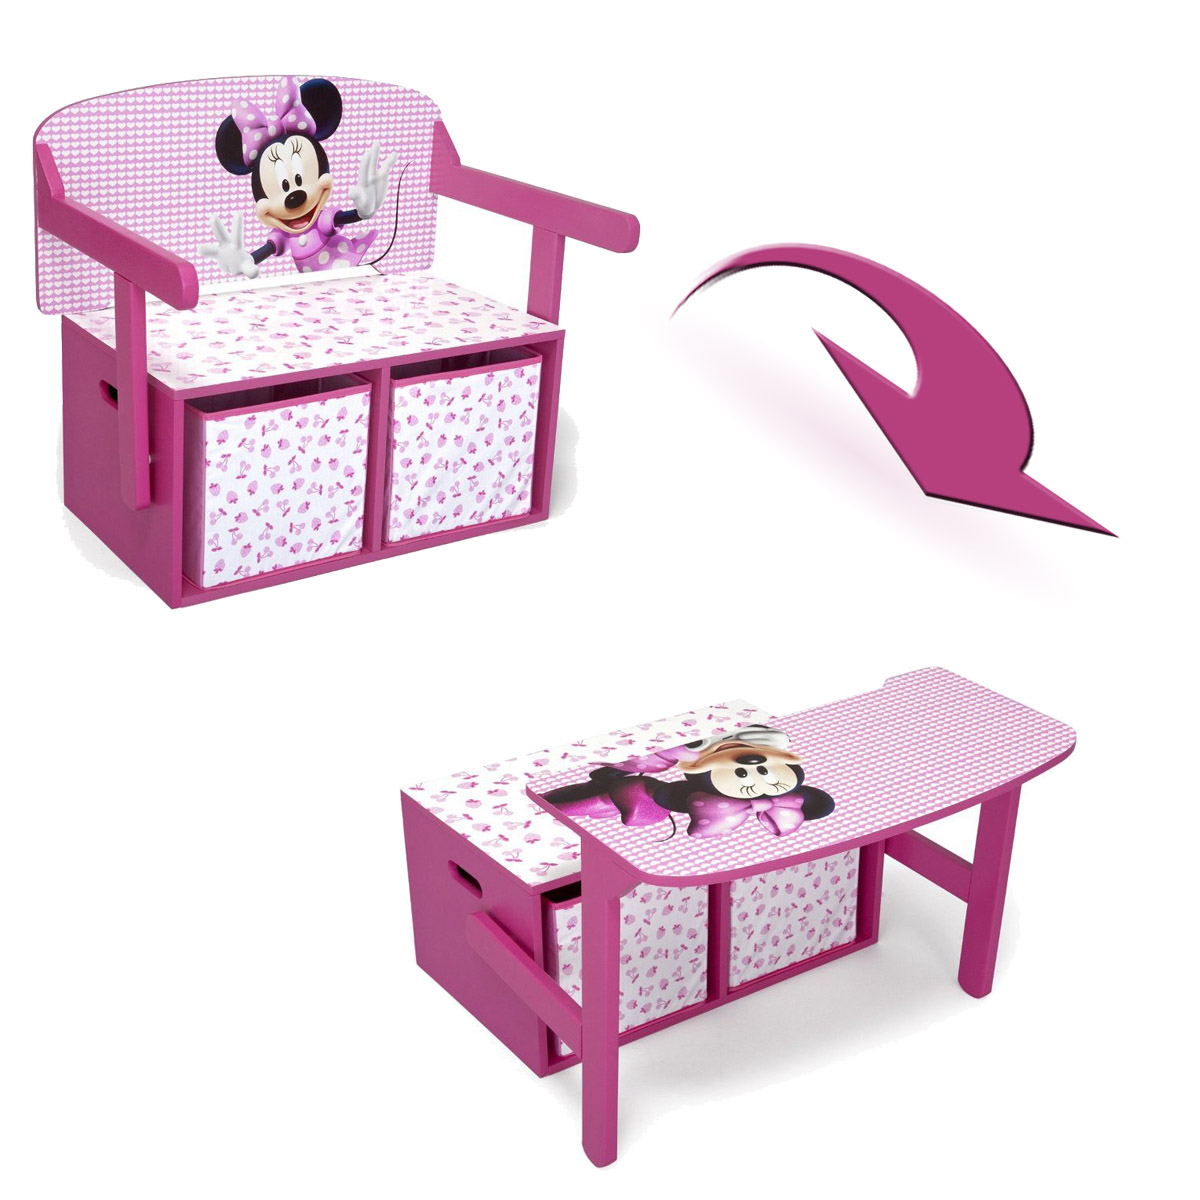 bureau enfant 3 ans bureau enfant table enfant table de jeu enfant espace de travail et devoir. Black Bedroom Furniture Sets. Home Design Ideas